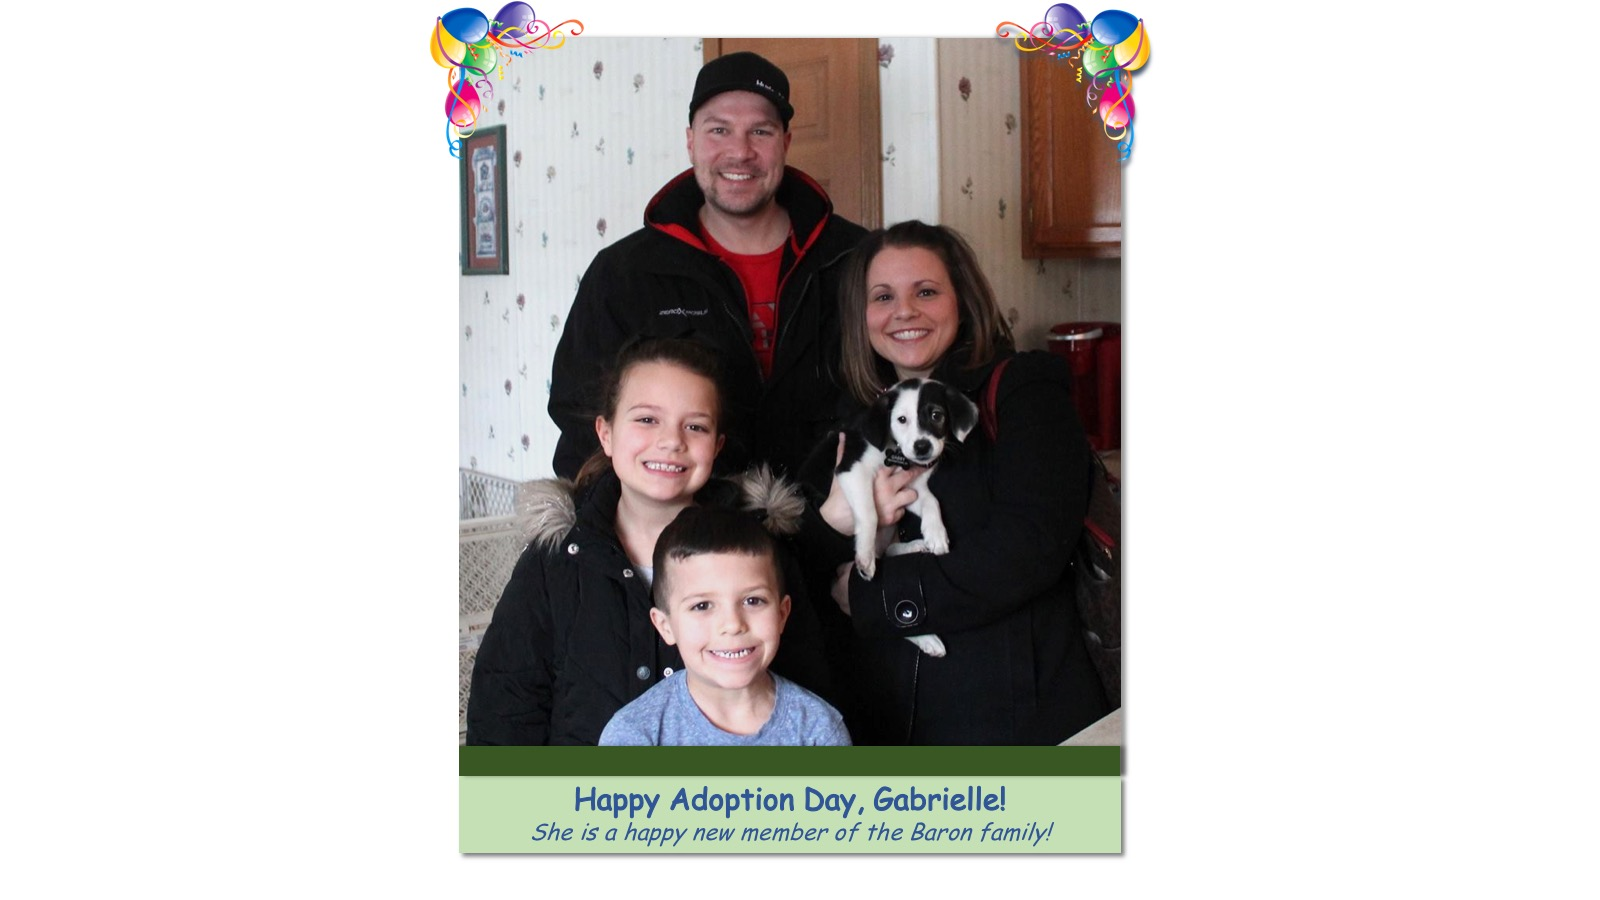 Gabrielle_Adoption_Photo_2018.jpg